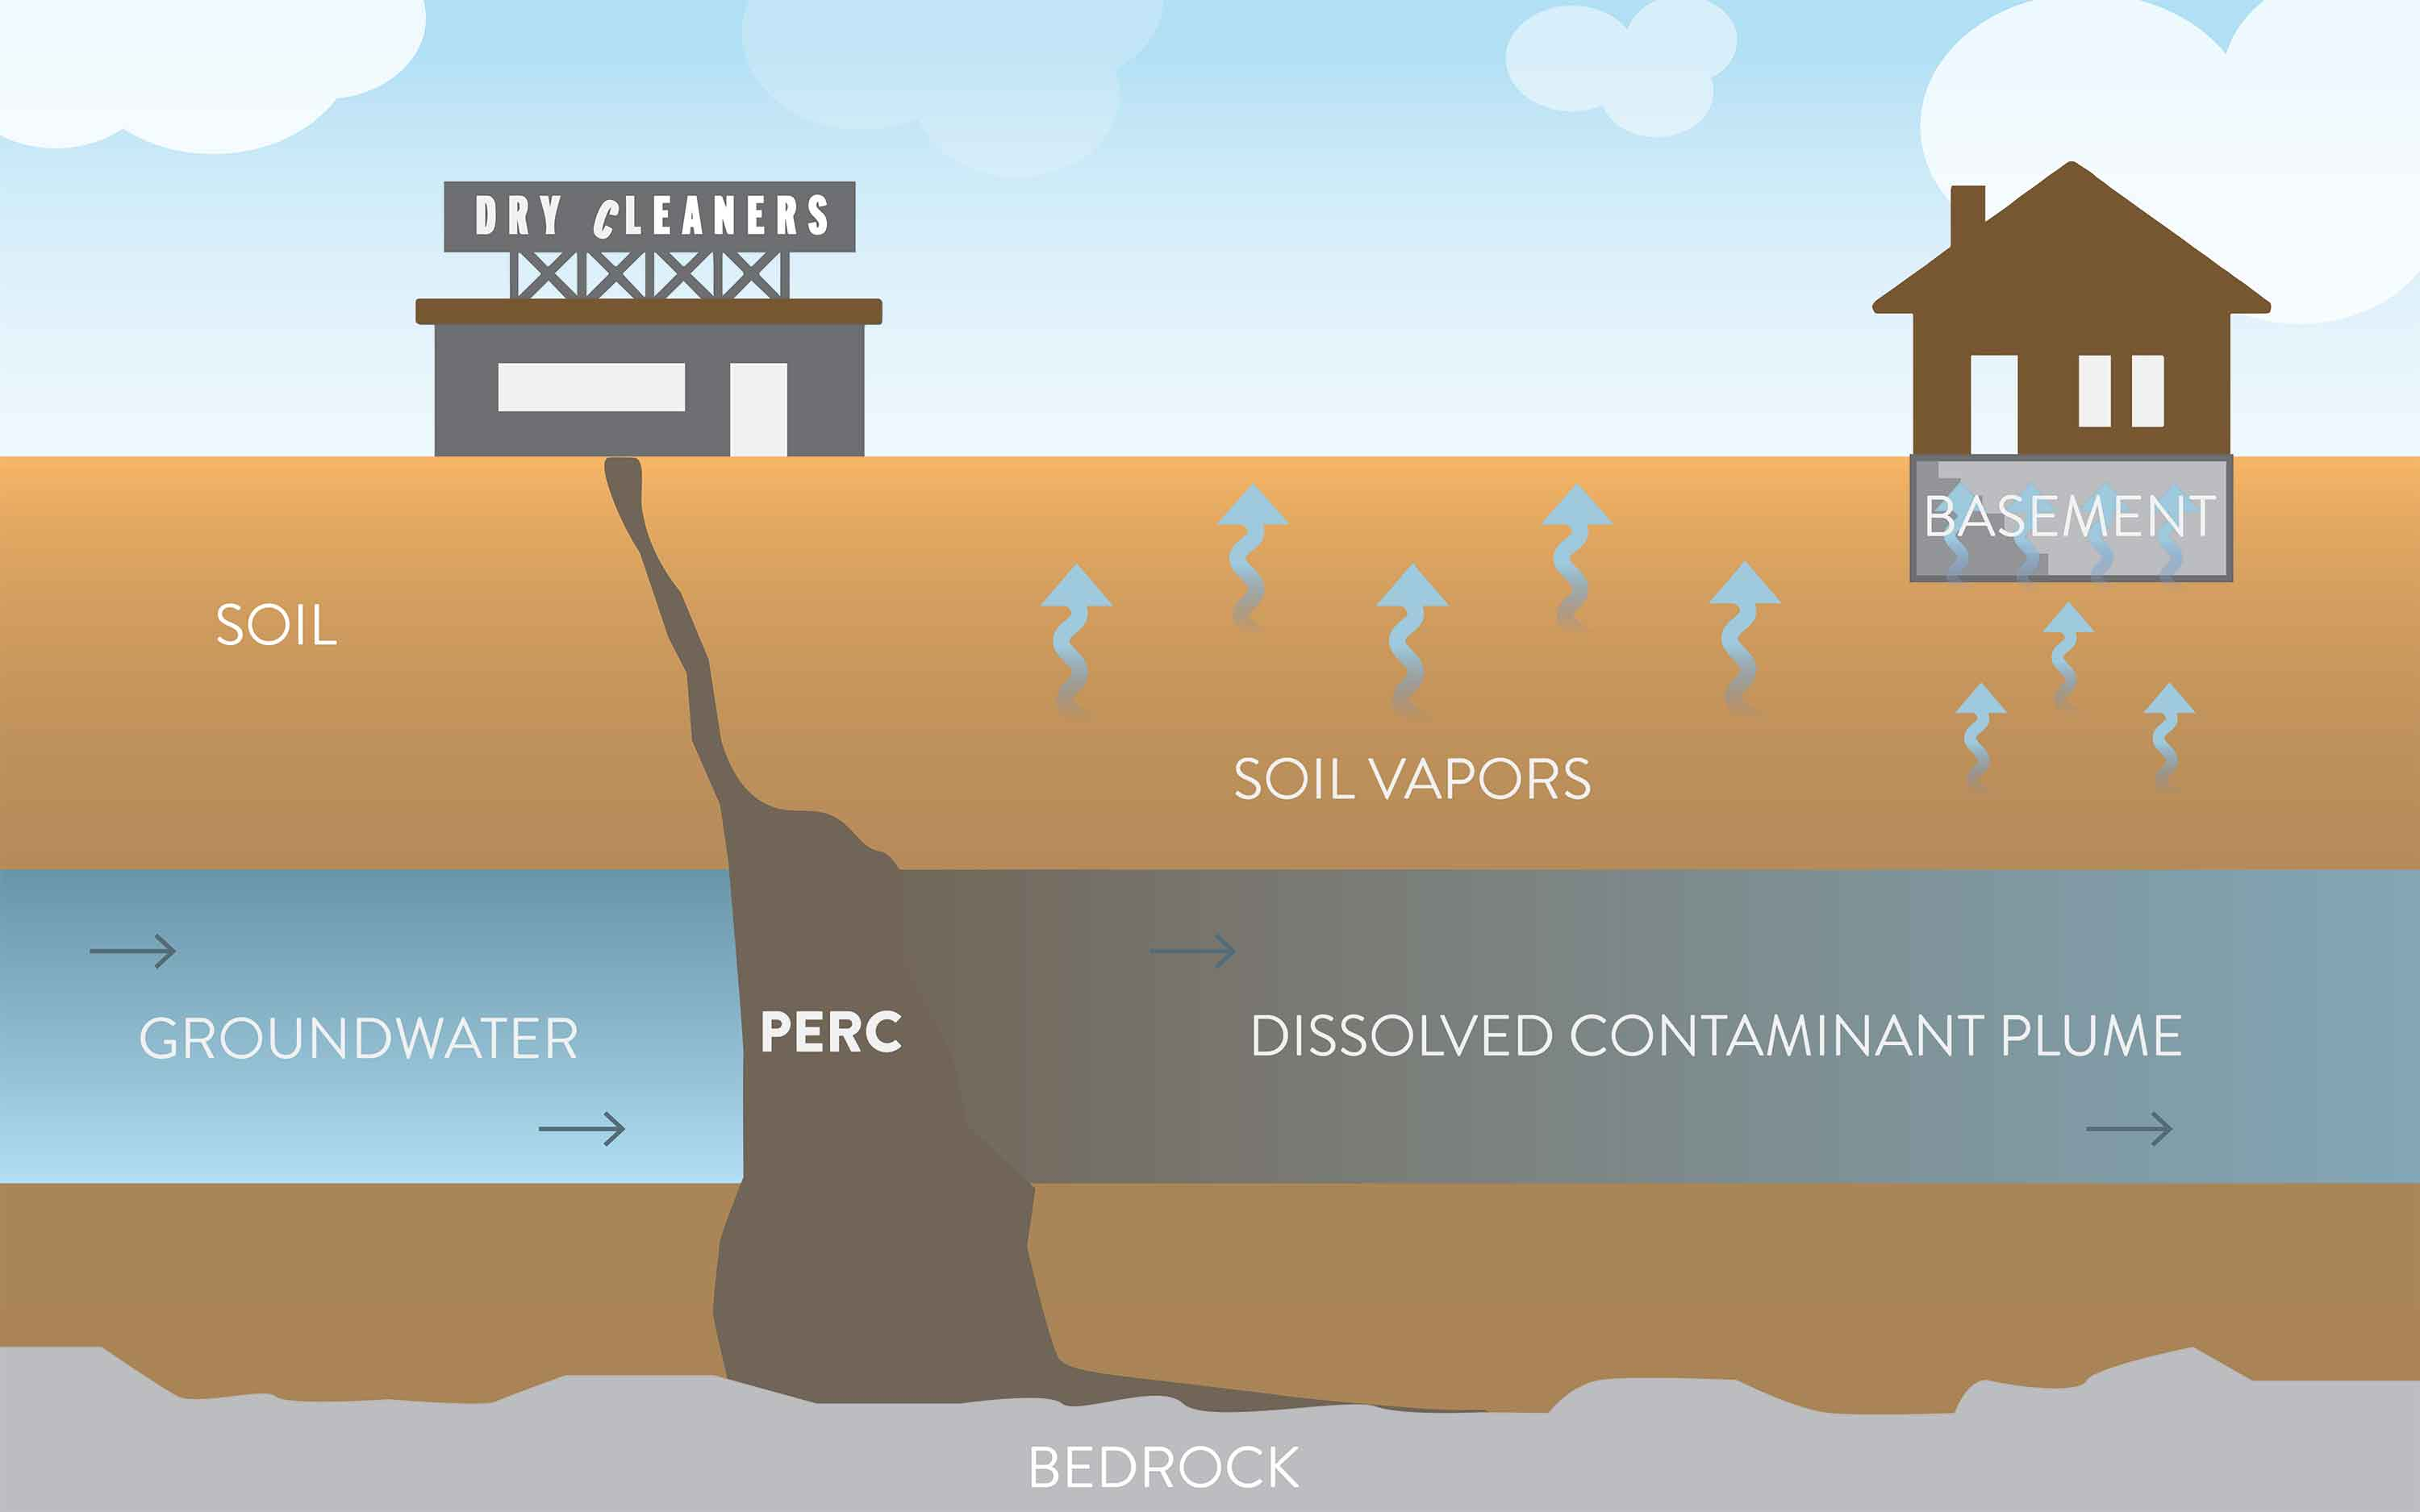 An illustration of perc soil vapors moving through the soil and into the basement of a home